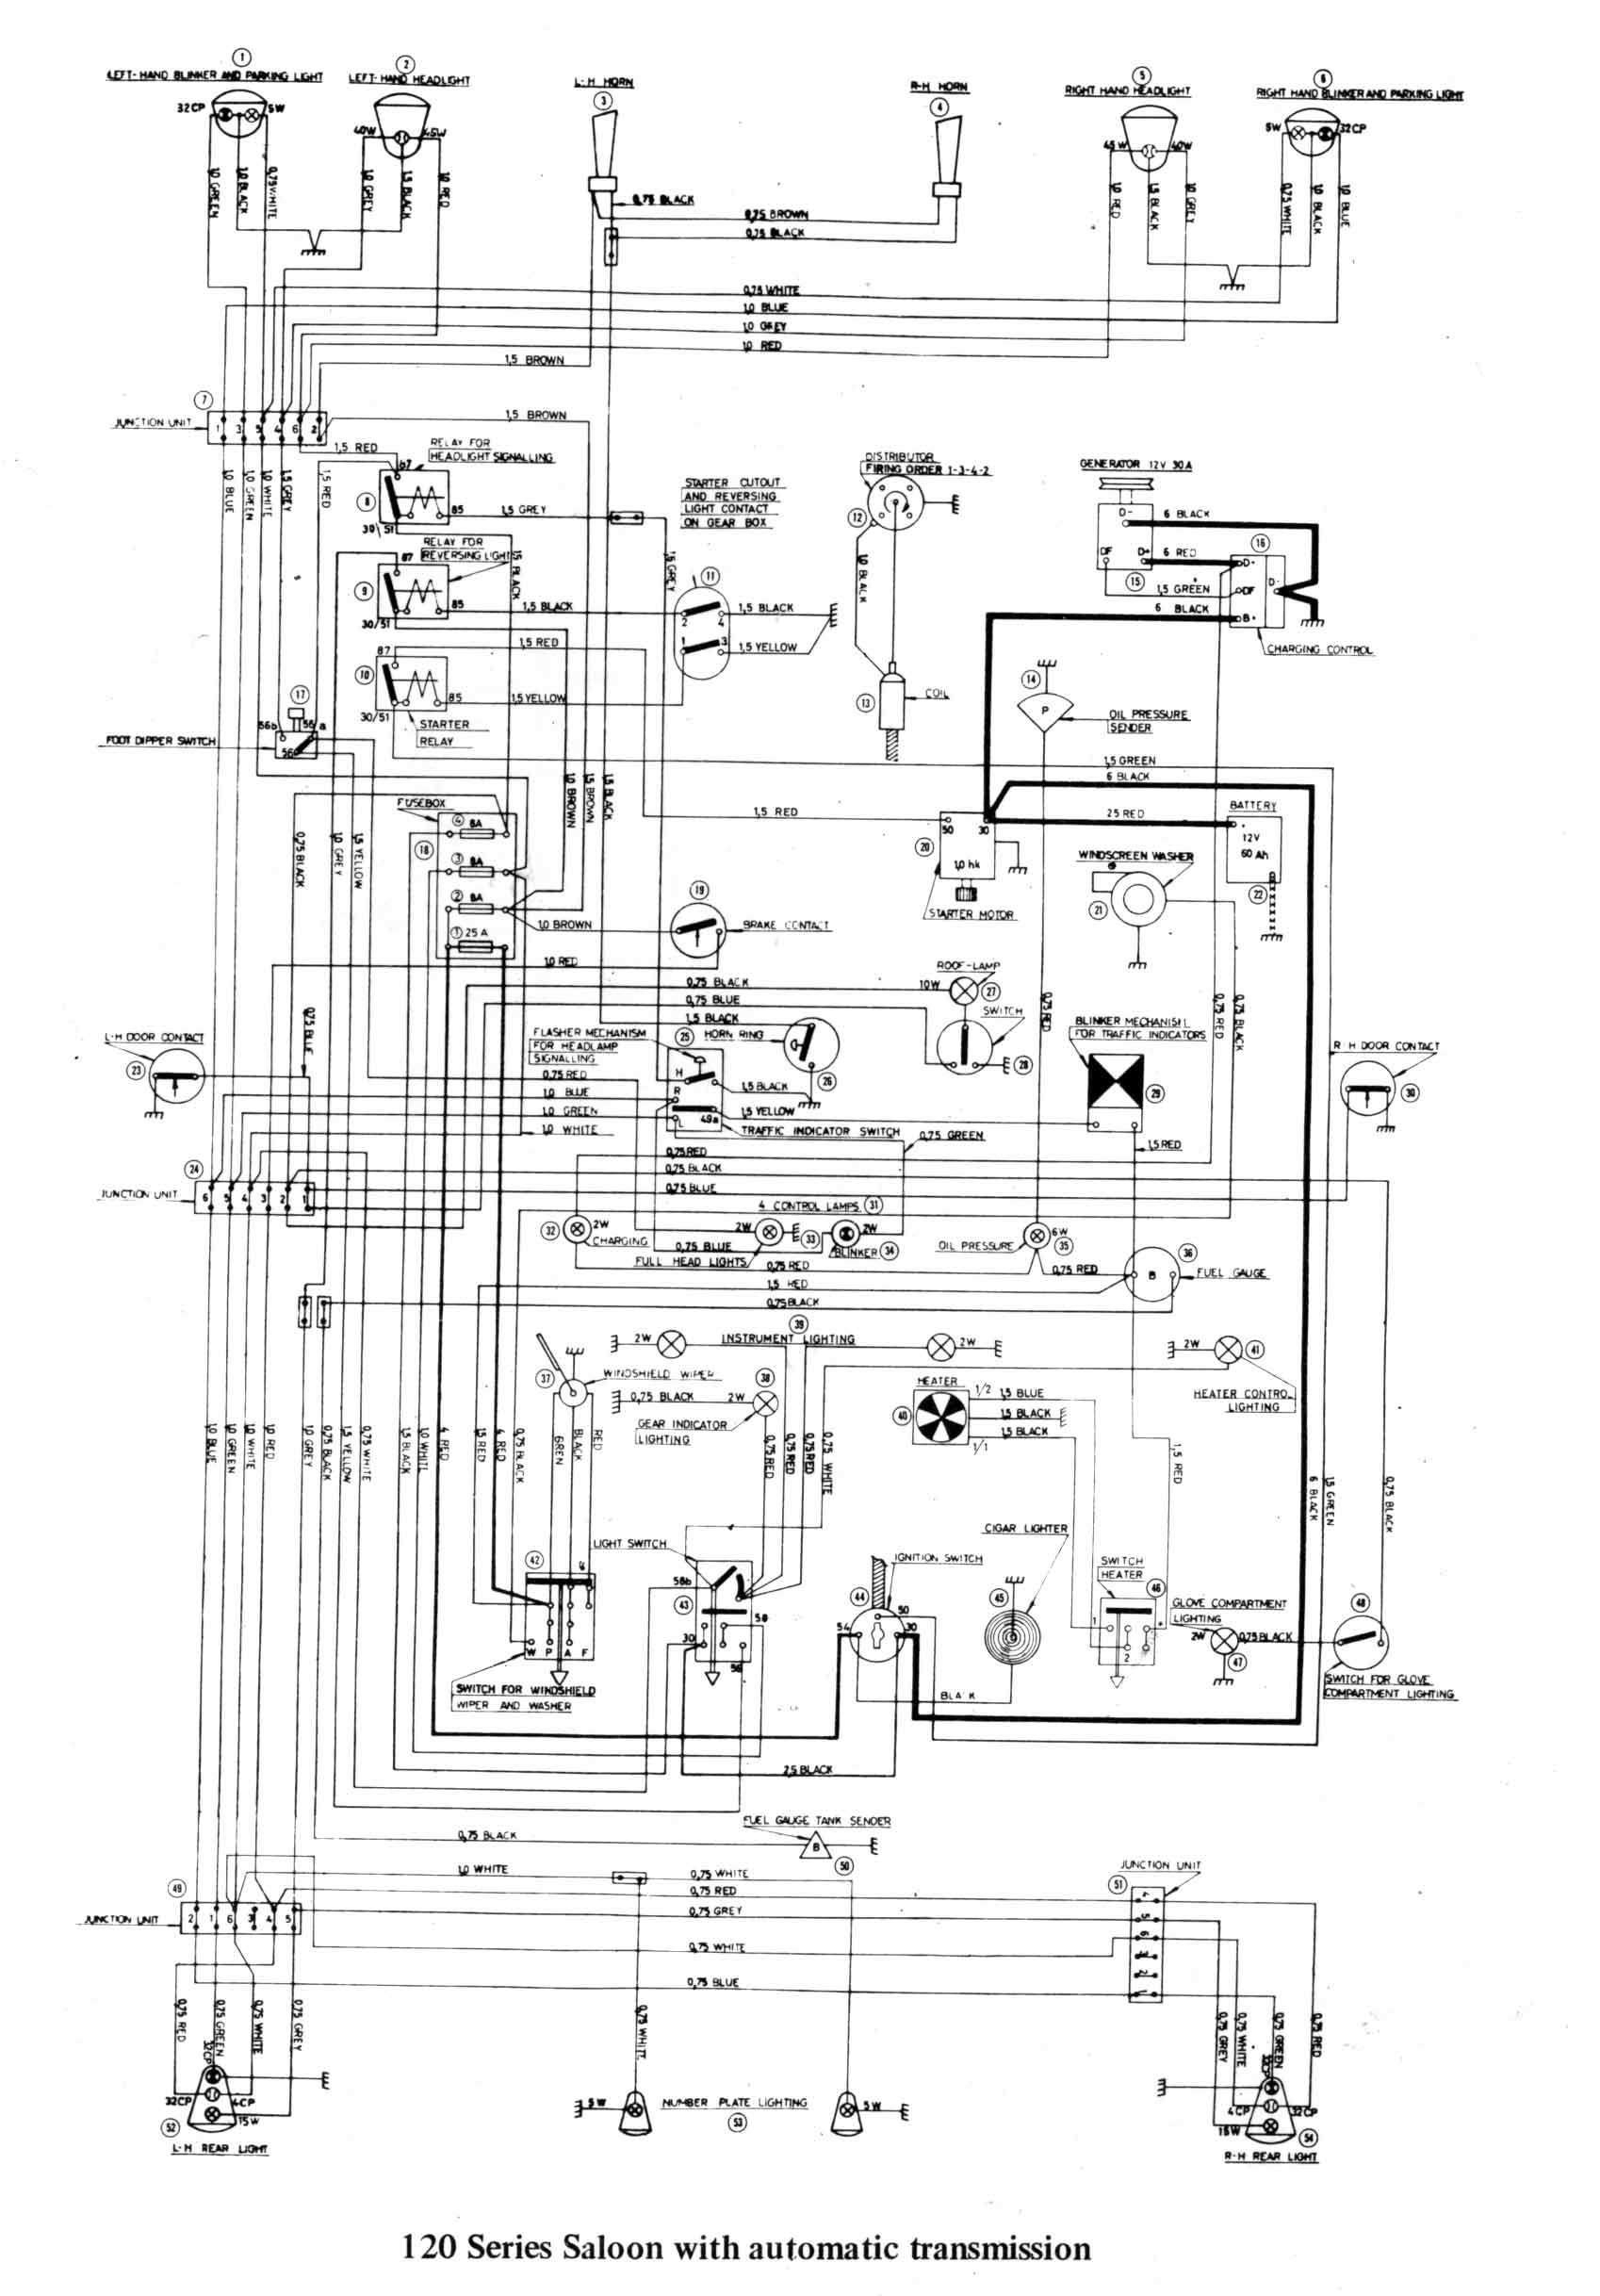 Saint Joystick Wiring Schematic | New Wiring Resources 2019 on copeland start winding motor schematic, compressor operation schematic, compressor diagram, copeland oil schematic, compressor filter schematic, breaker schematic, copeland compressor schematic, copeland condenser schematic, freezer schematic, compressor clutch schematic, compressor starting relay schematic, compressor motor schematic,